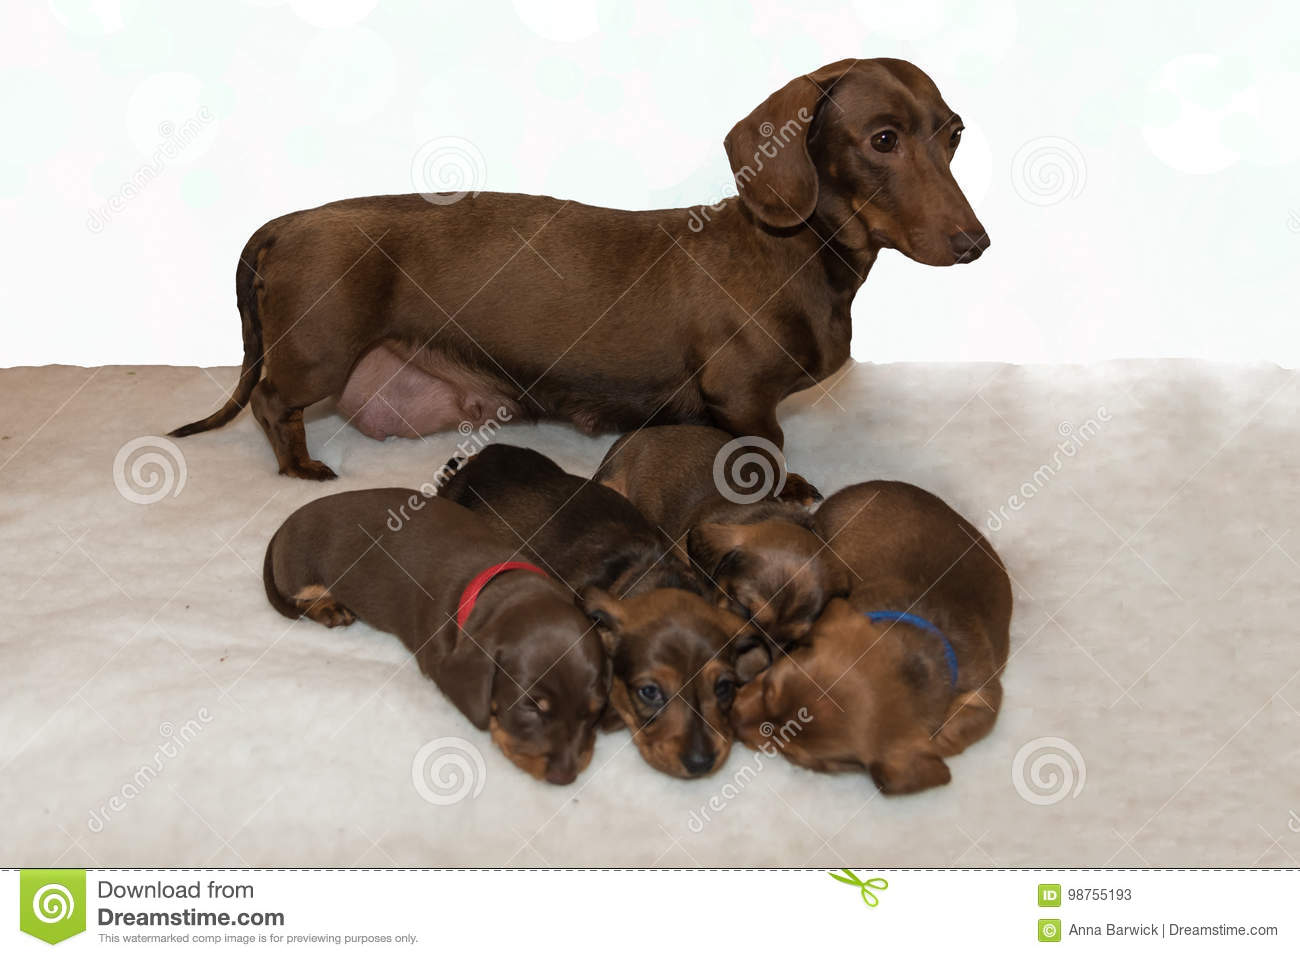 Chocolate And Tan Miniature Dachshund With Four Puppies Stock Image Image Of Fluffy Canine 98755193